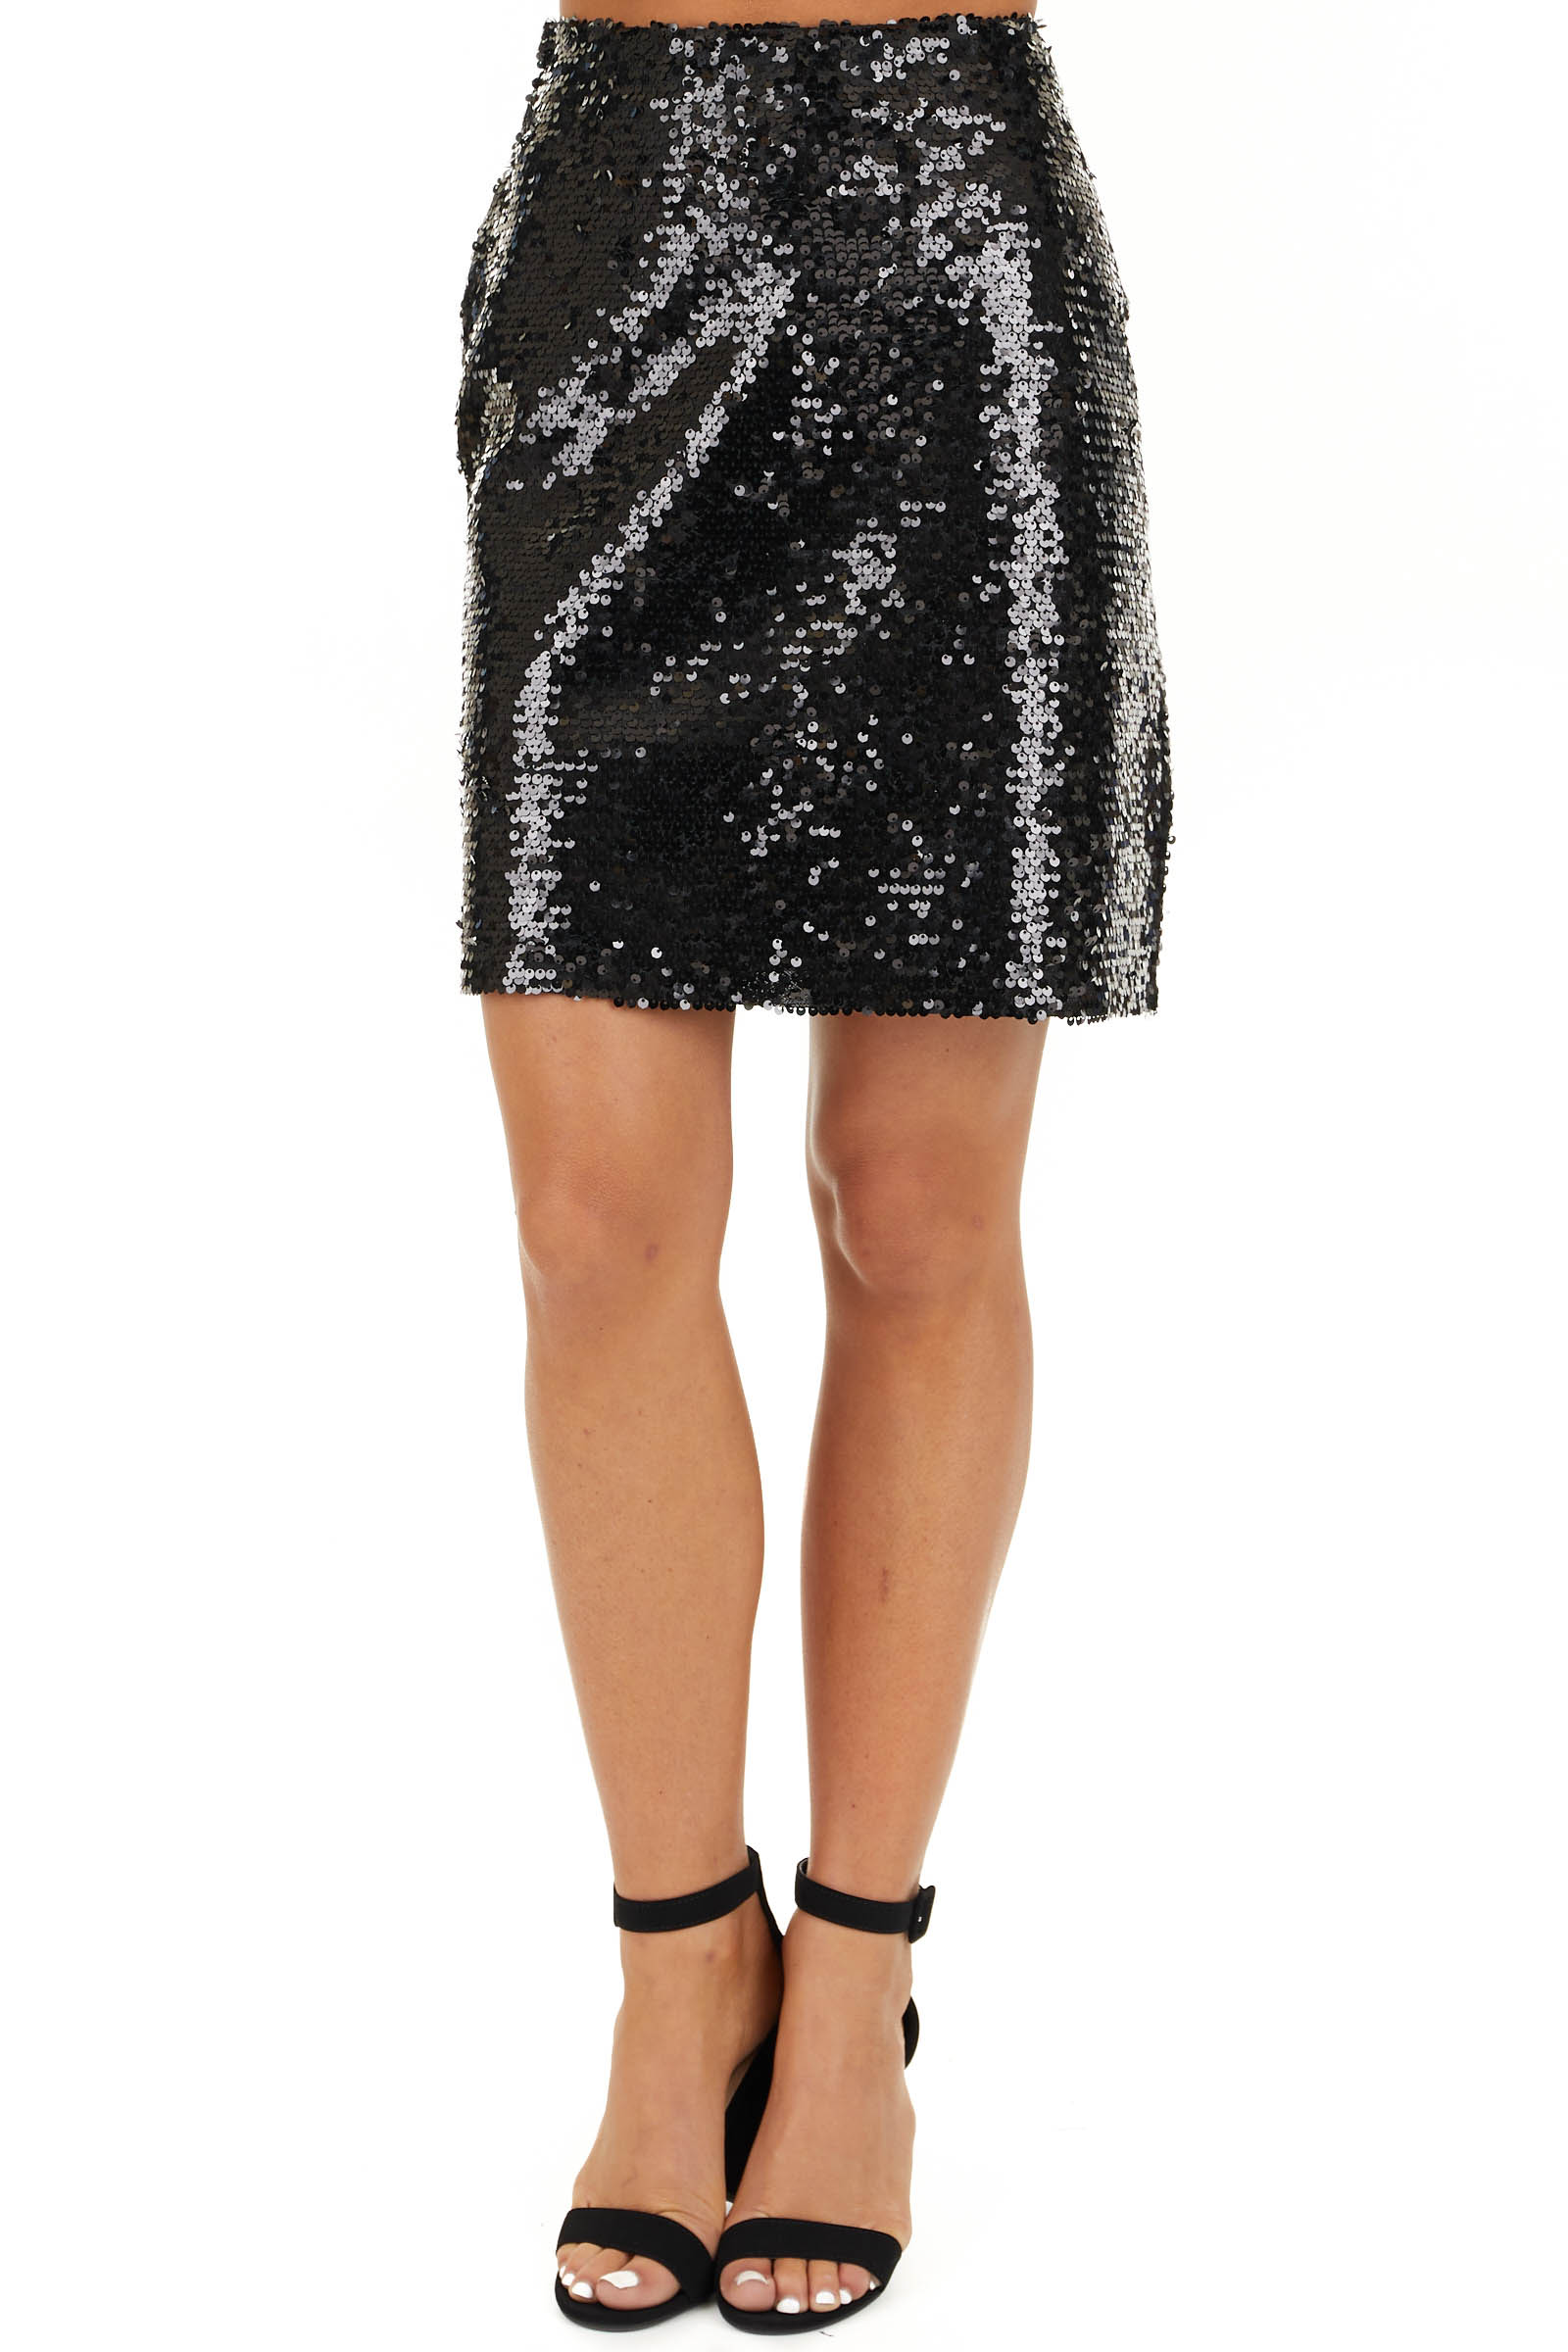 Black Sequined Mini Skirt with Side Zipper Closure front view